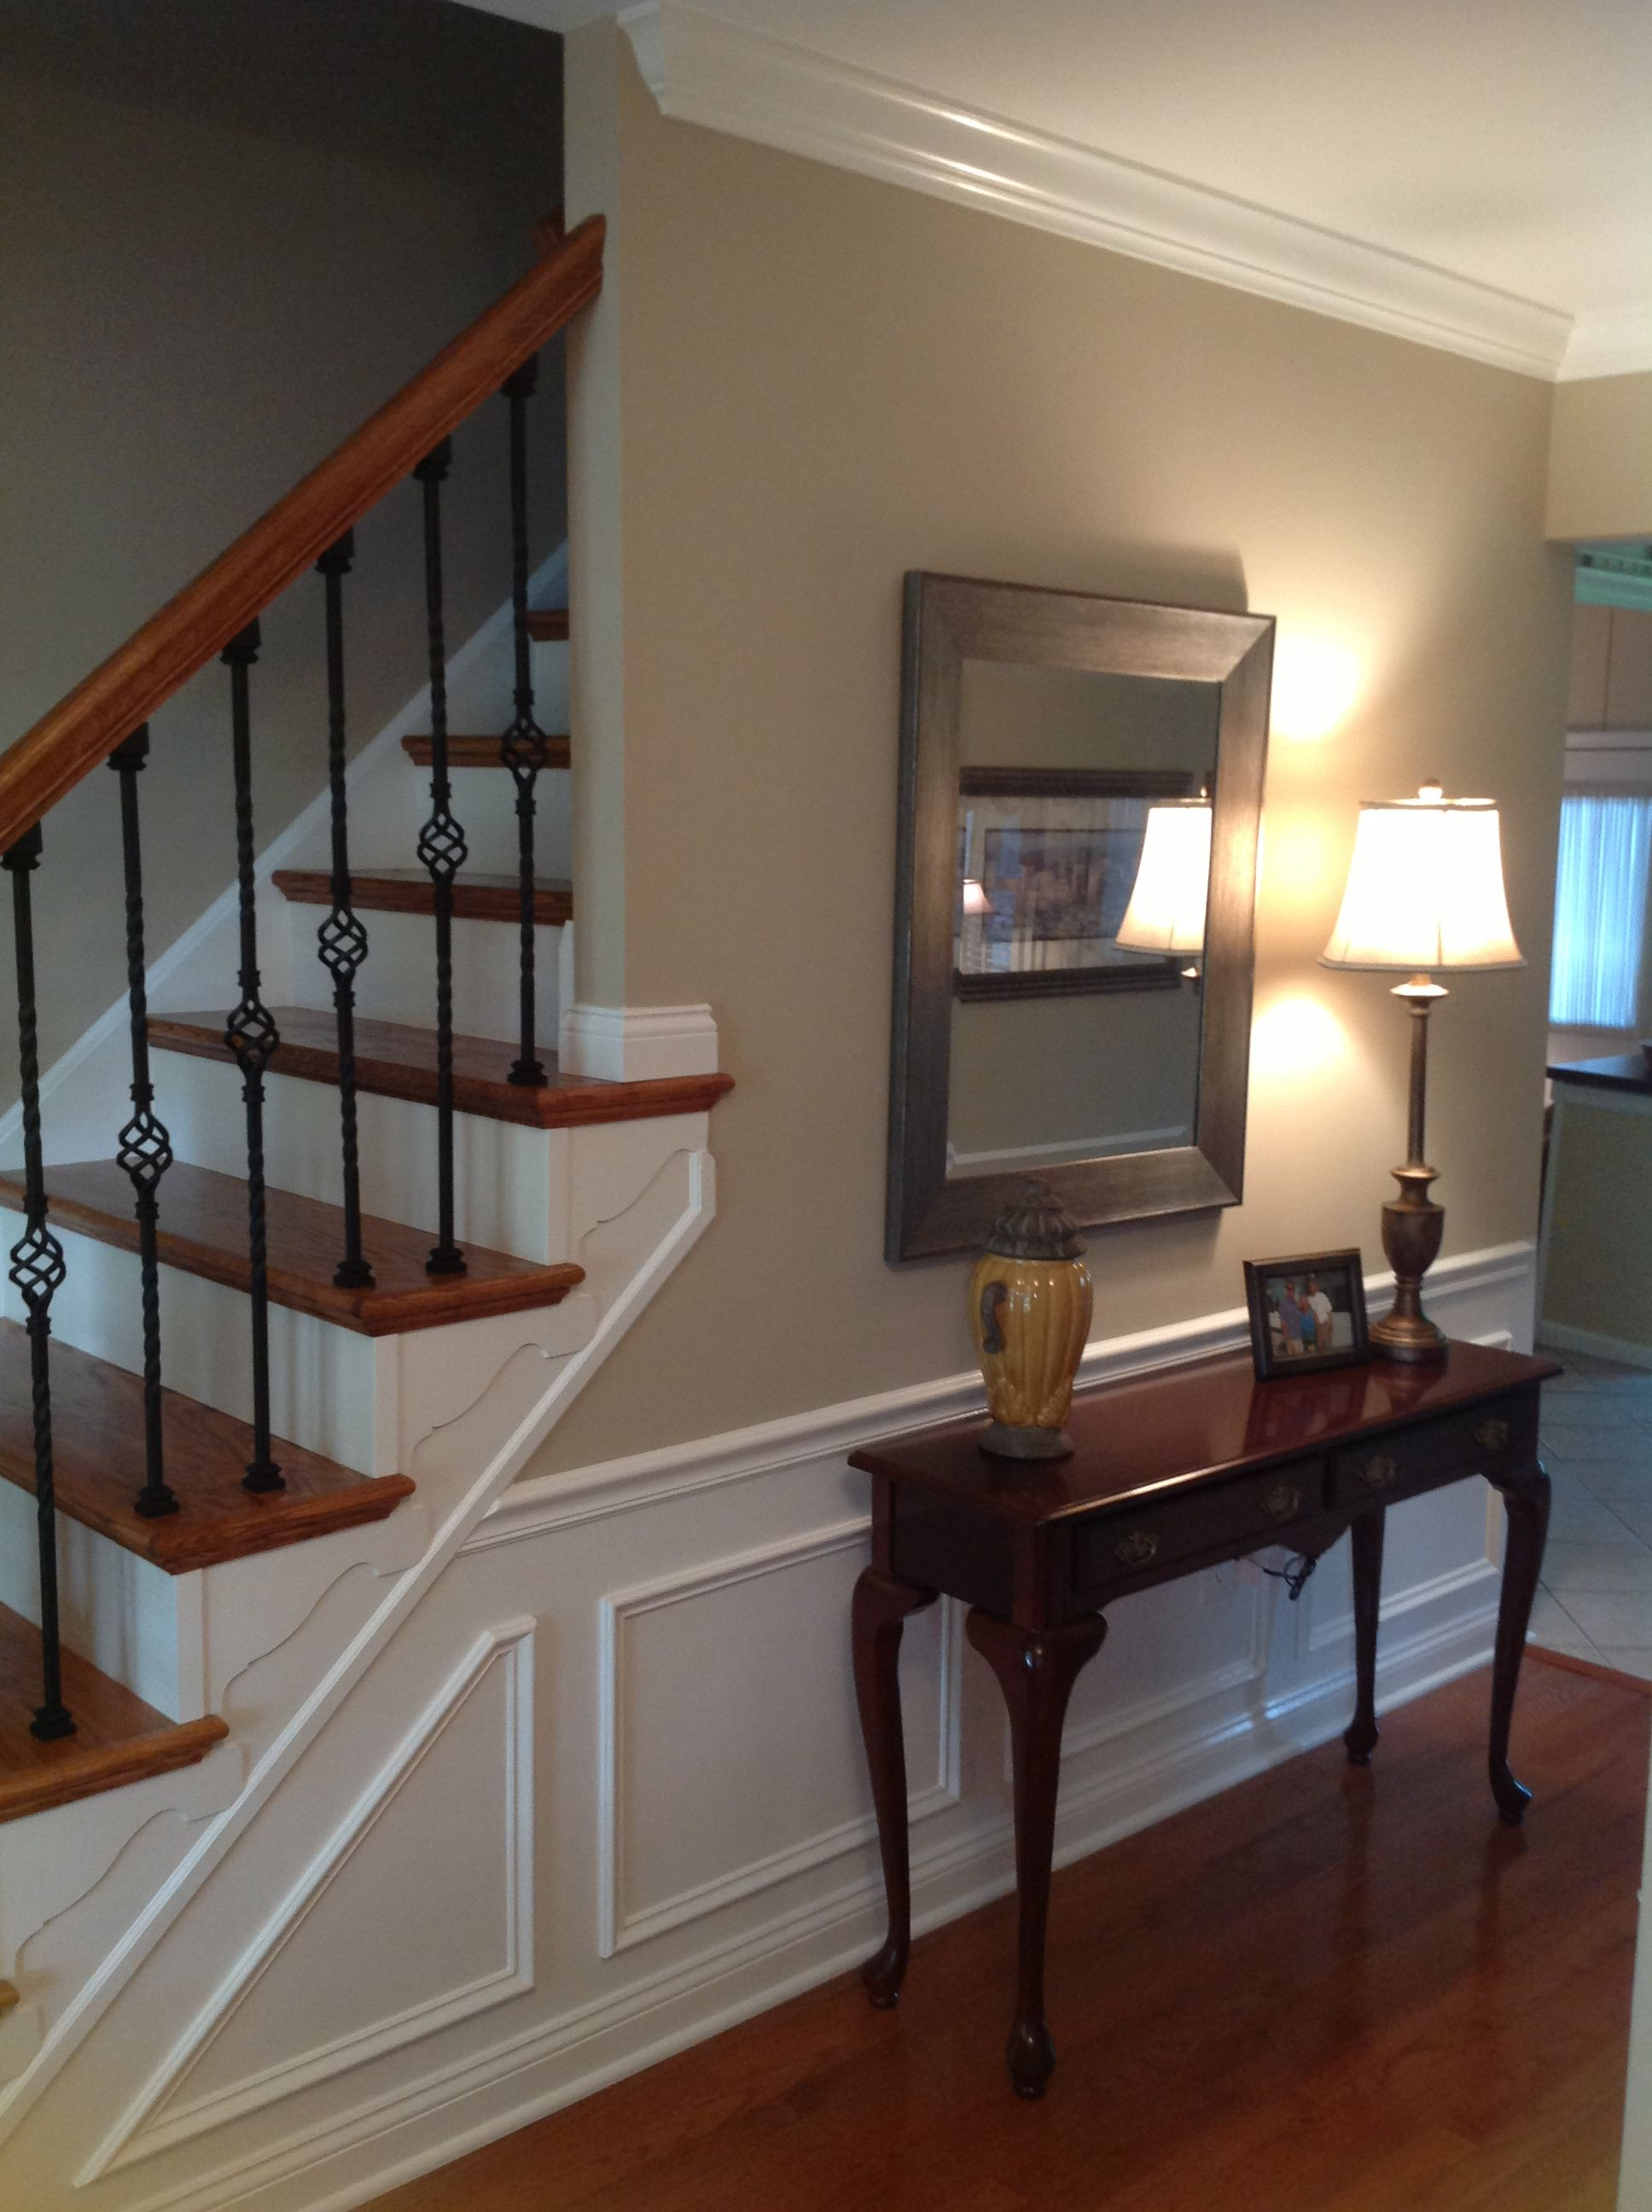 New stairway, railings, hardwoods, molding and fresh paint   Home, Home remodeling, New home ...